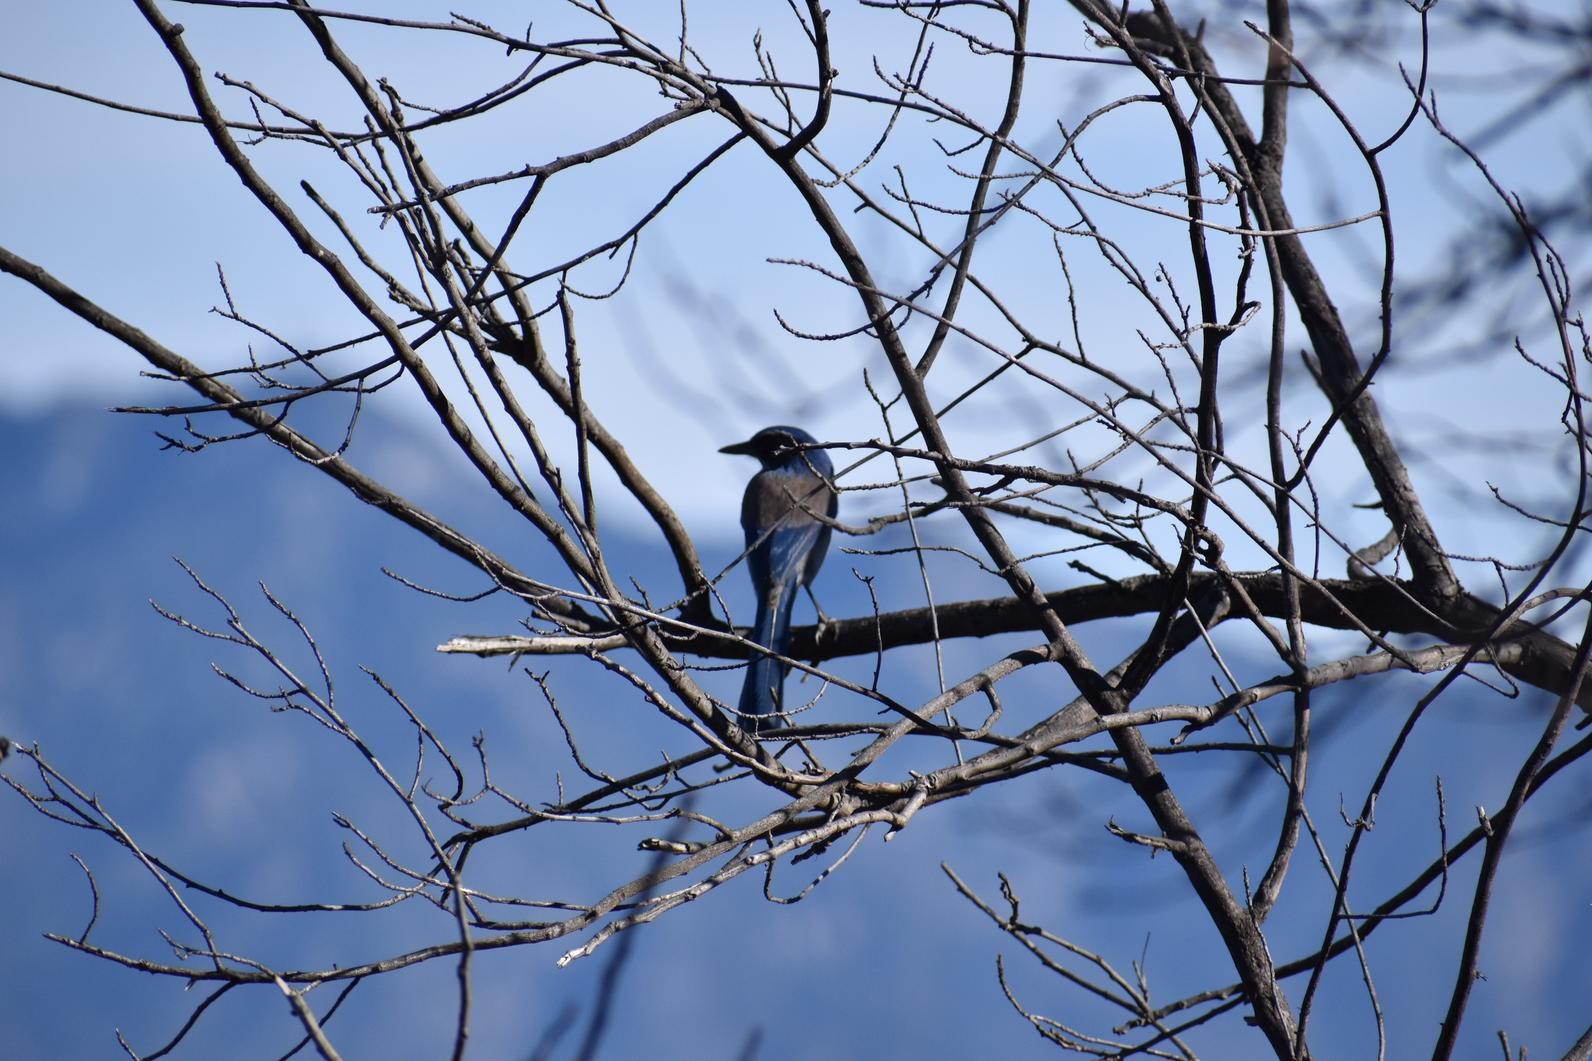 California Scrub Jay in trees.